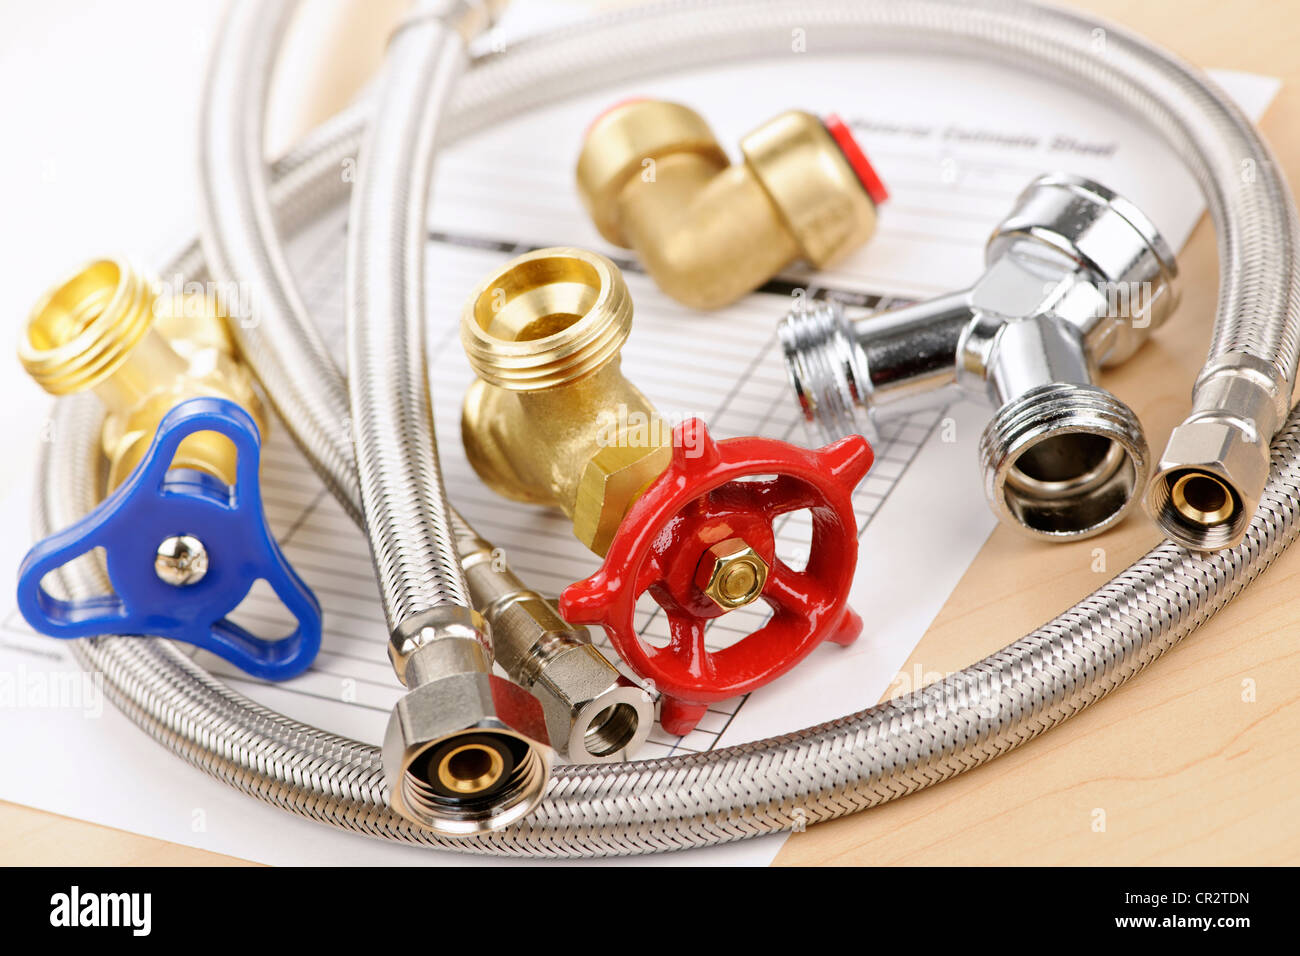 Plumbing valves hoses and assorted parts with estimate sheet - Stock Image